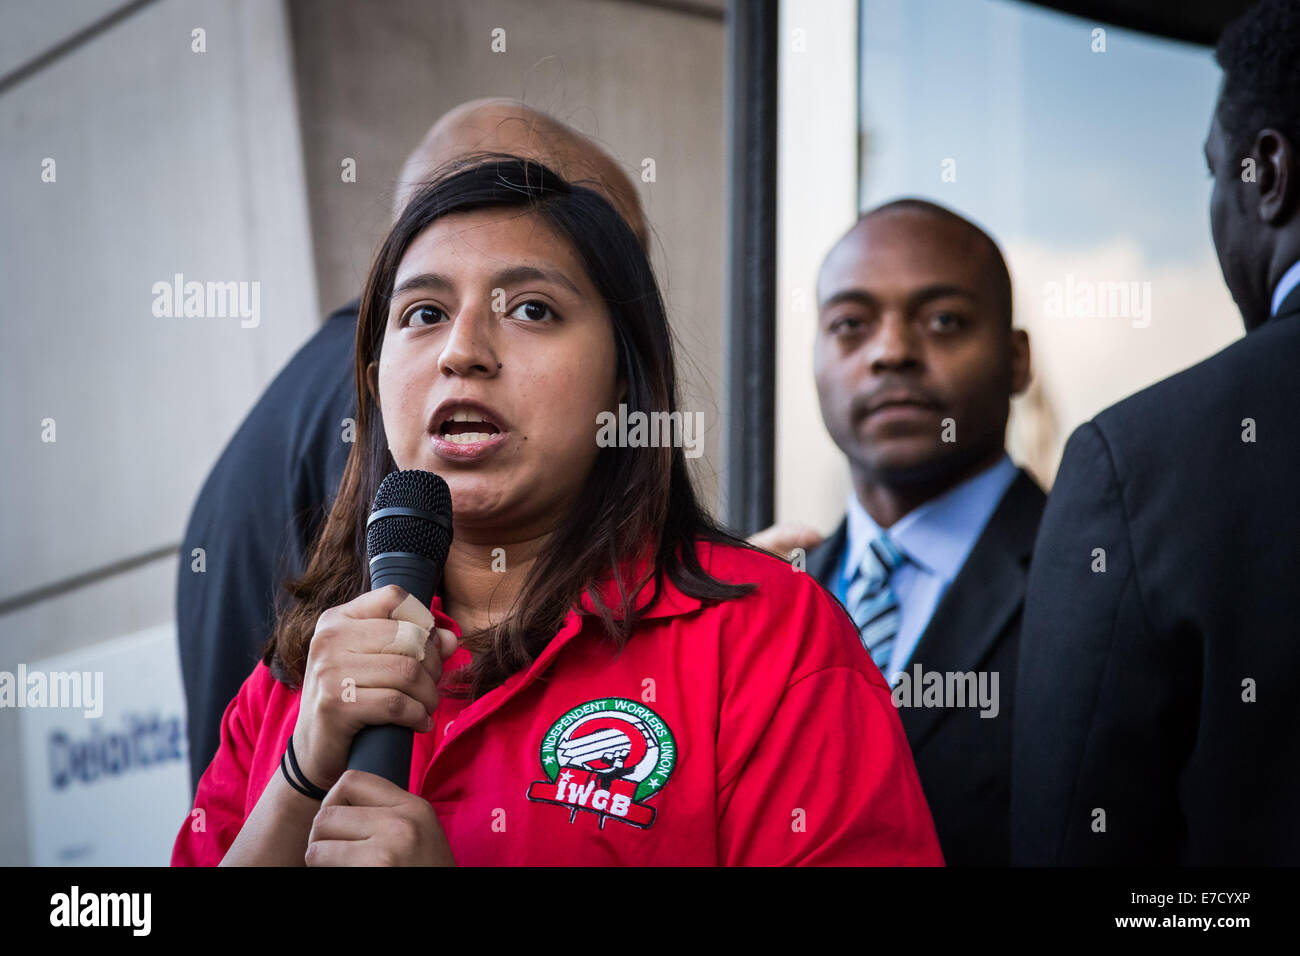 London, UK. 12th Sept, 2014.  IWGB Cleaners protest against Serco misconduct 2014 Credit:  Guy Corbishley/Alamy - Stock Image